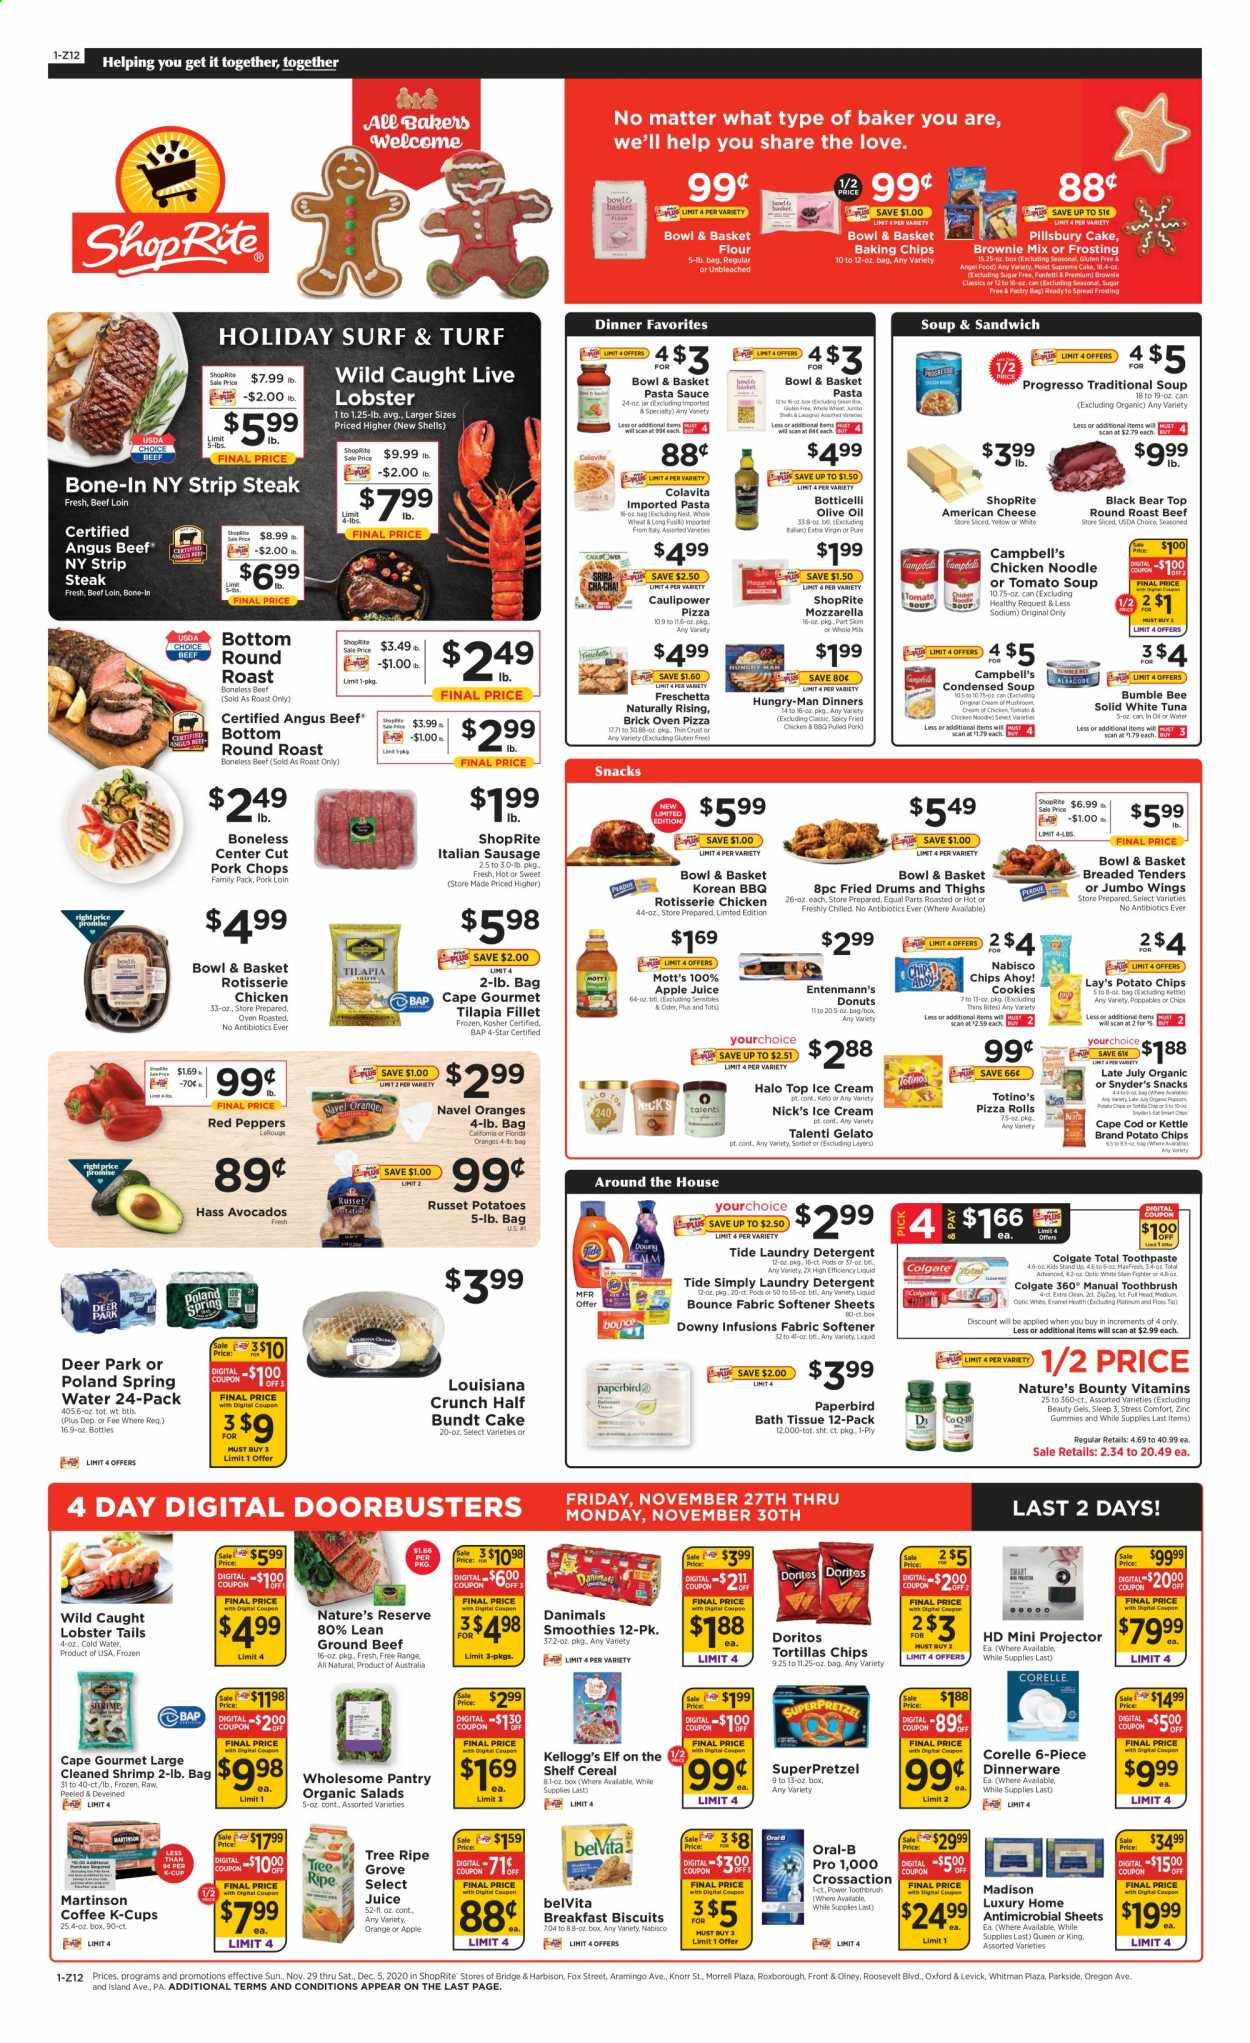 ShopRite Flyer - 11.29.2020 - 12.05.2020 - Sales products - american cheese, angel food, apple juice, avocado, basket, bath tissue, beef meat, biscuits, box, brownie mix, bundt, Campbell's, cereals, cod, cookies, deer, detergent, Doritos, Downy, elf, Colgate, extra virgin olive oil, flour, frosting, frozen, fuel, ground beef, lobster, milk, mozzarella, Nature's Bounty, russet potatoes, sausage, solid, spring water, Tide, tilapia, tomato soup, toothbrush, tortillas, tuna, ice cream, jar, pillsbury cake, pizza, pork chops, pork loin, pork meat, potato chips, potatoes, chicken, pasta sauce, noodle, olive oil, oven, orange, Oral-b, chips, steak, cheese, juice, cake, sandwich, condensed soup, soup, mushroom, toothpaste, snack, pizza rolls, projector, softener, pasta, Bumble Bee, AVG, Lay's, Knorr, sauce, Bounty, peppers, brownie, laundry detergent, fried chicken, shrimps, donut, kettle, spring, zinc. Page 1.